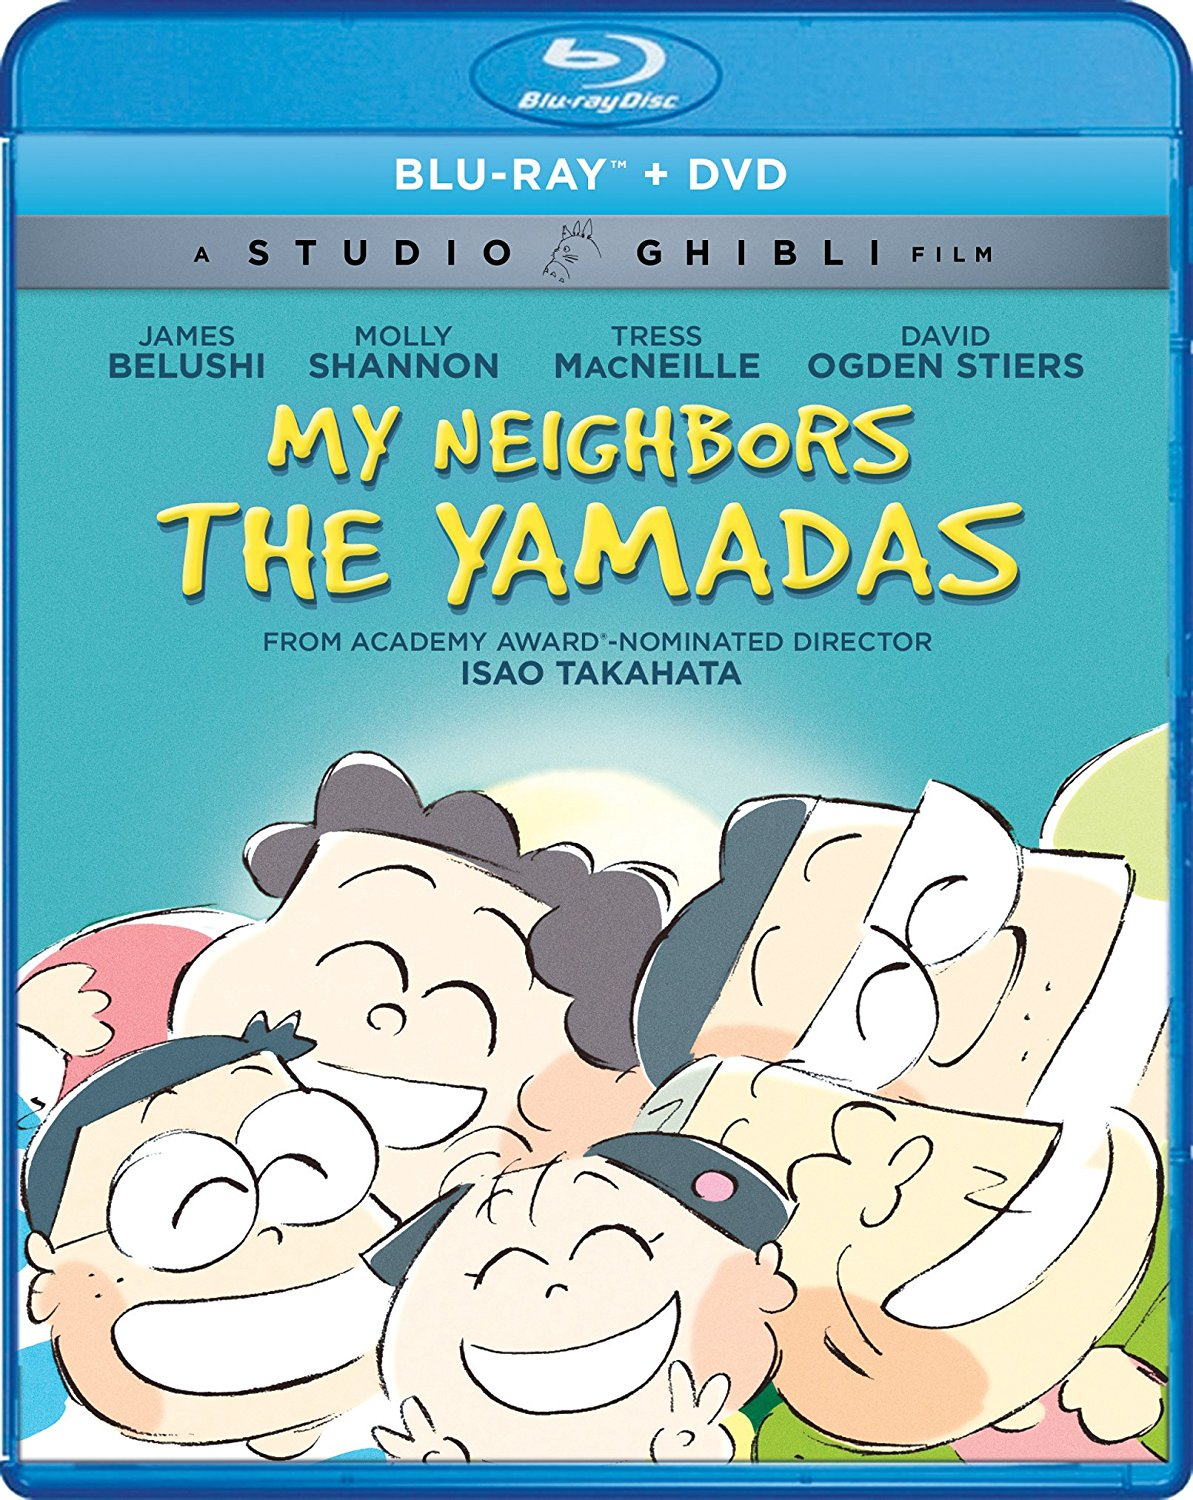 My Neighbors the Yamadas Blu-ray/DVD 826663181562